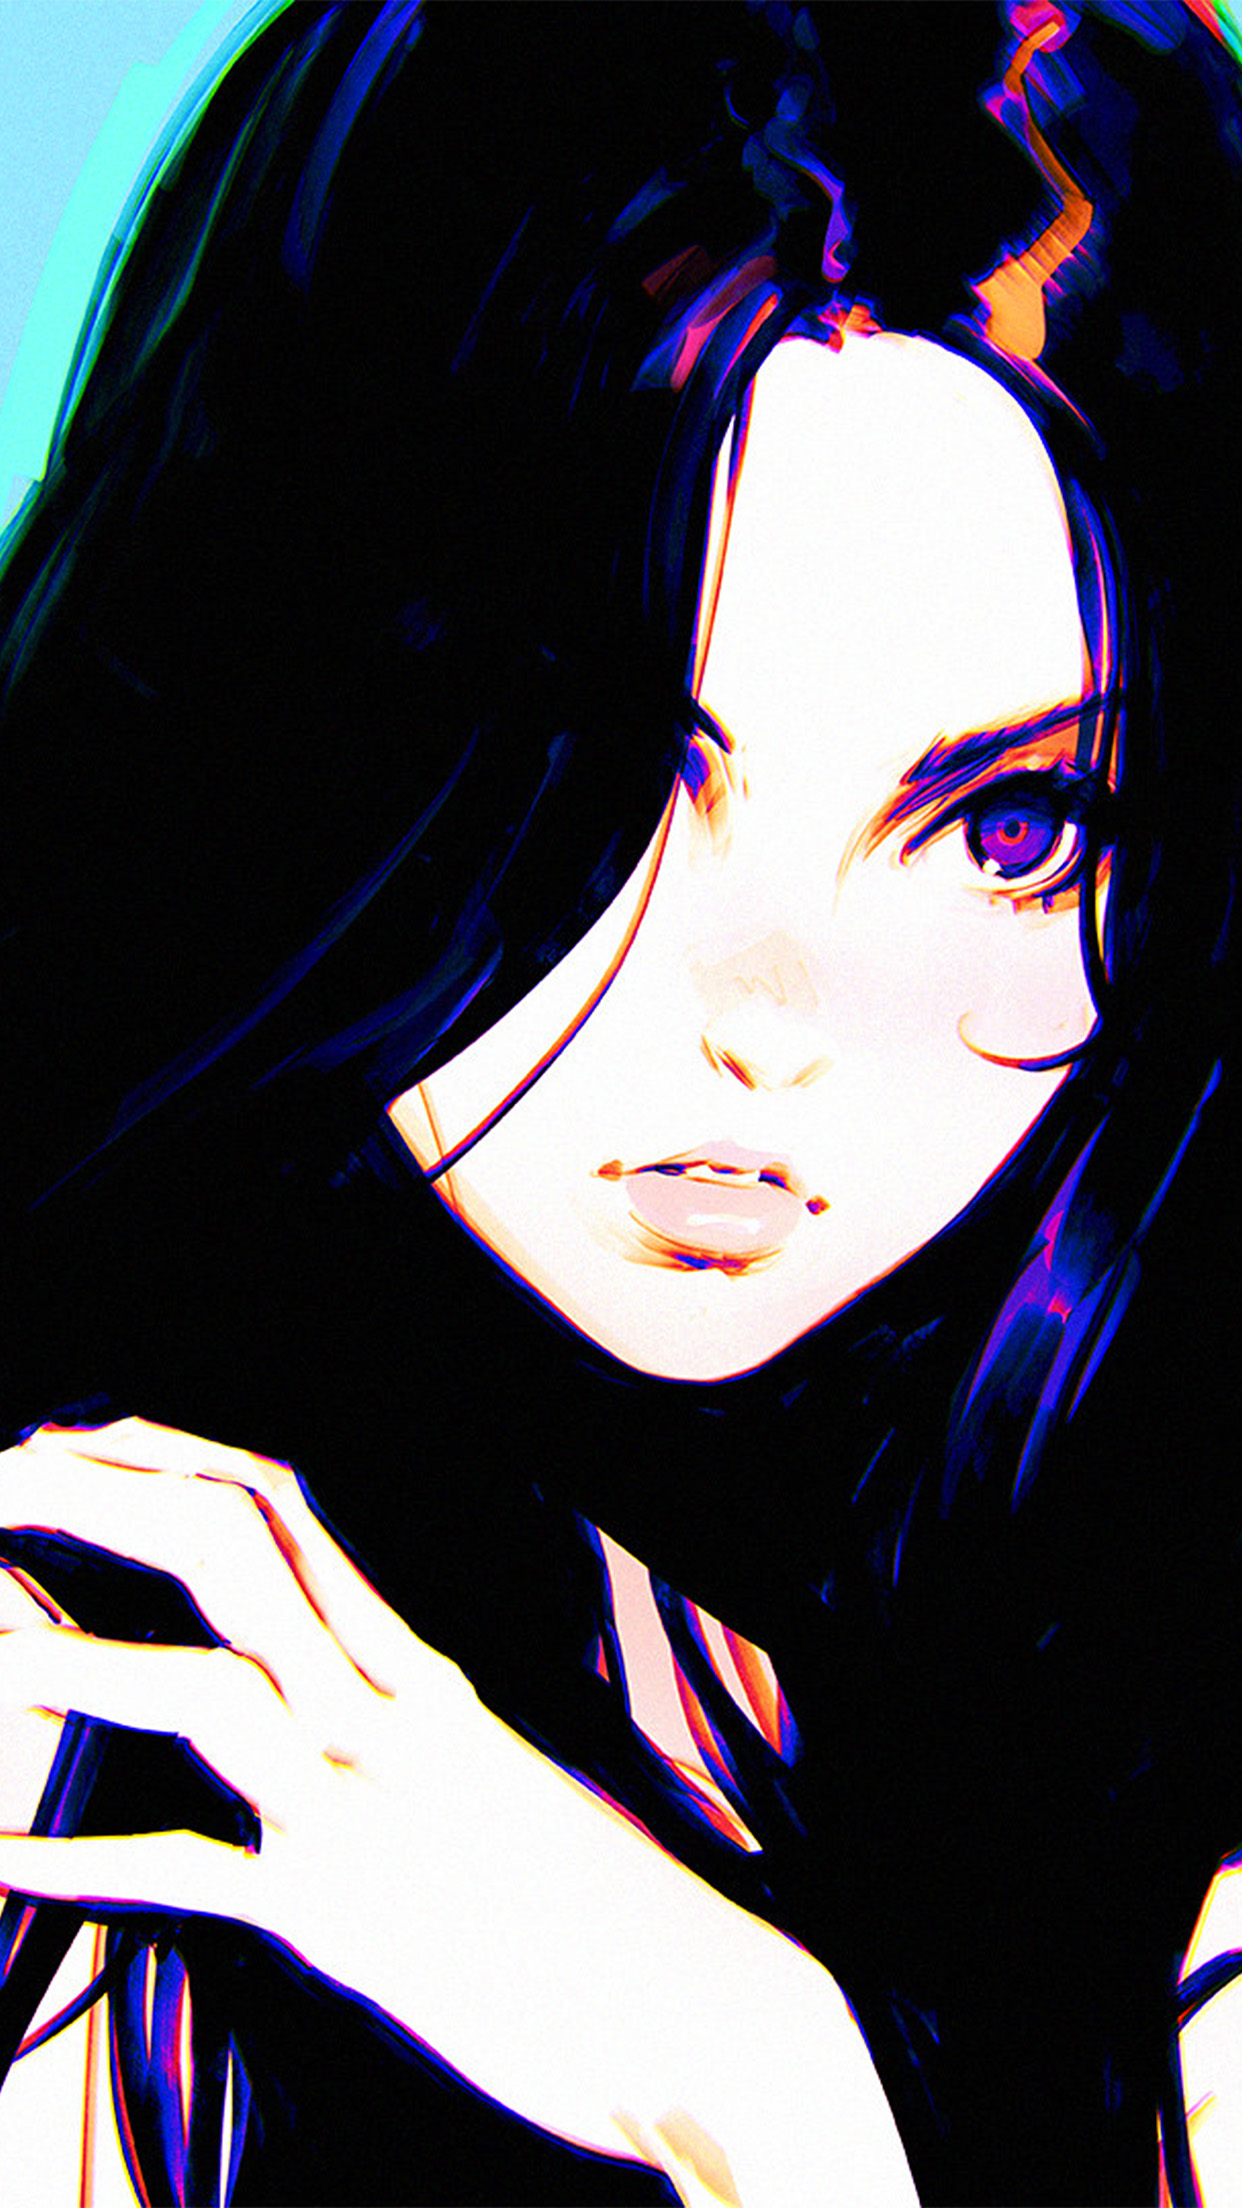 Cute Girl Wallpapers For Iphone Av69 Girl Ilya Kuvshinov Blue Illustration Art Wallpaper